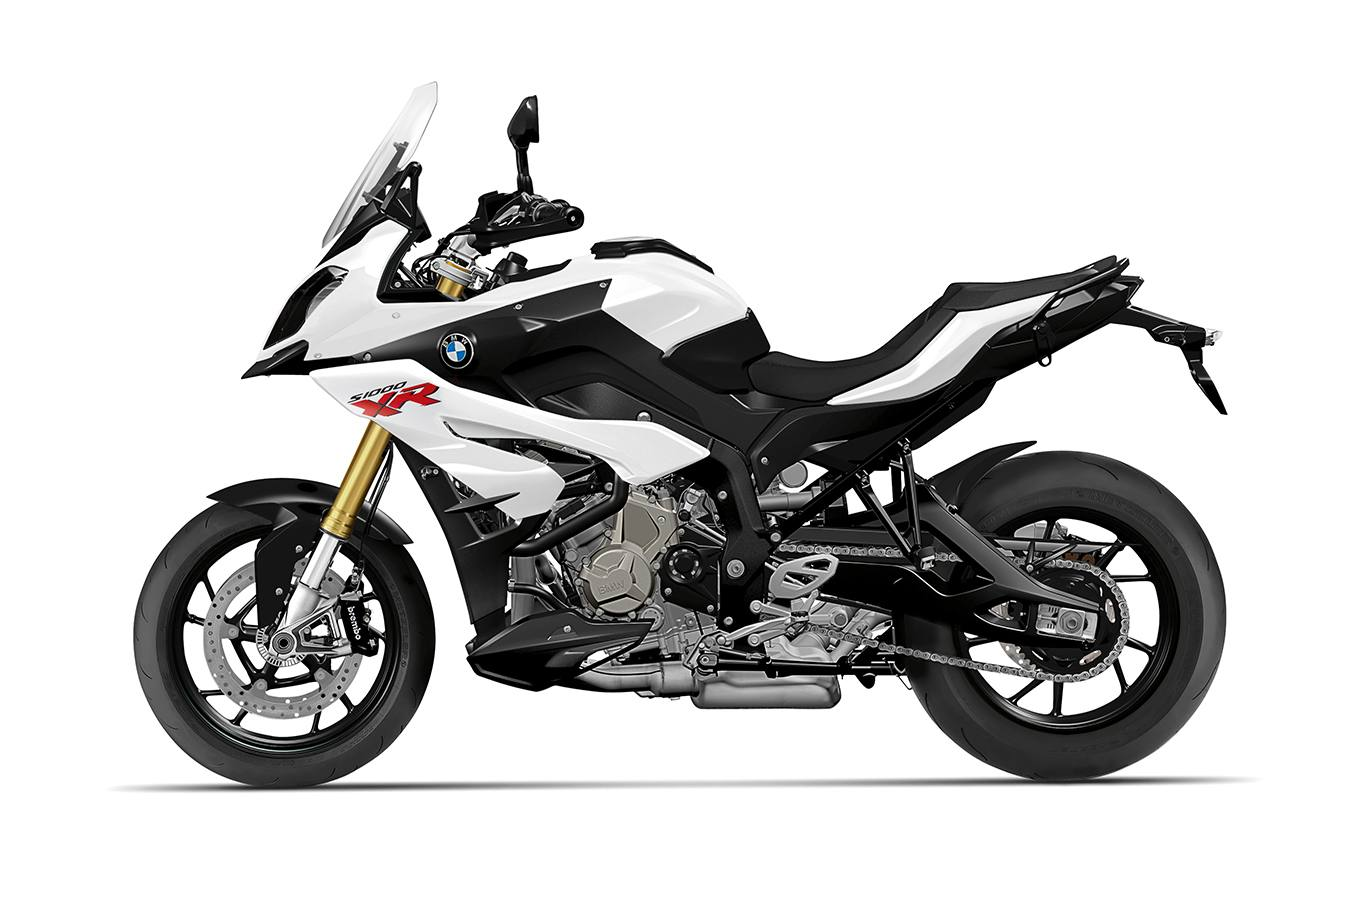 2016 bmw s1000xr for sale in wexford, pa | bmw motorcycles of